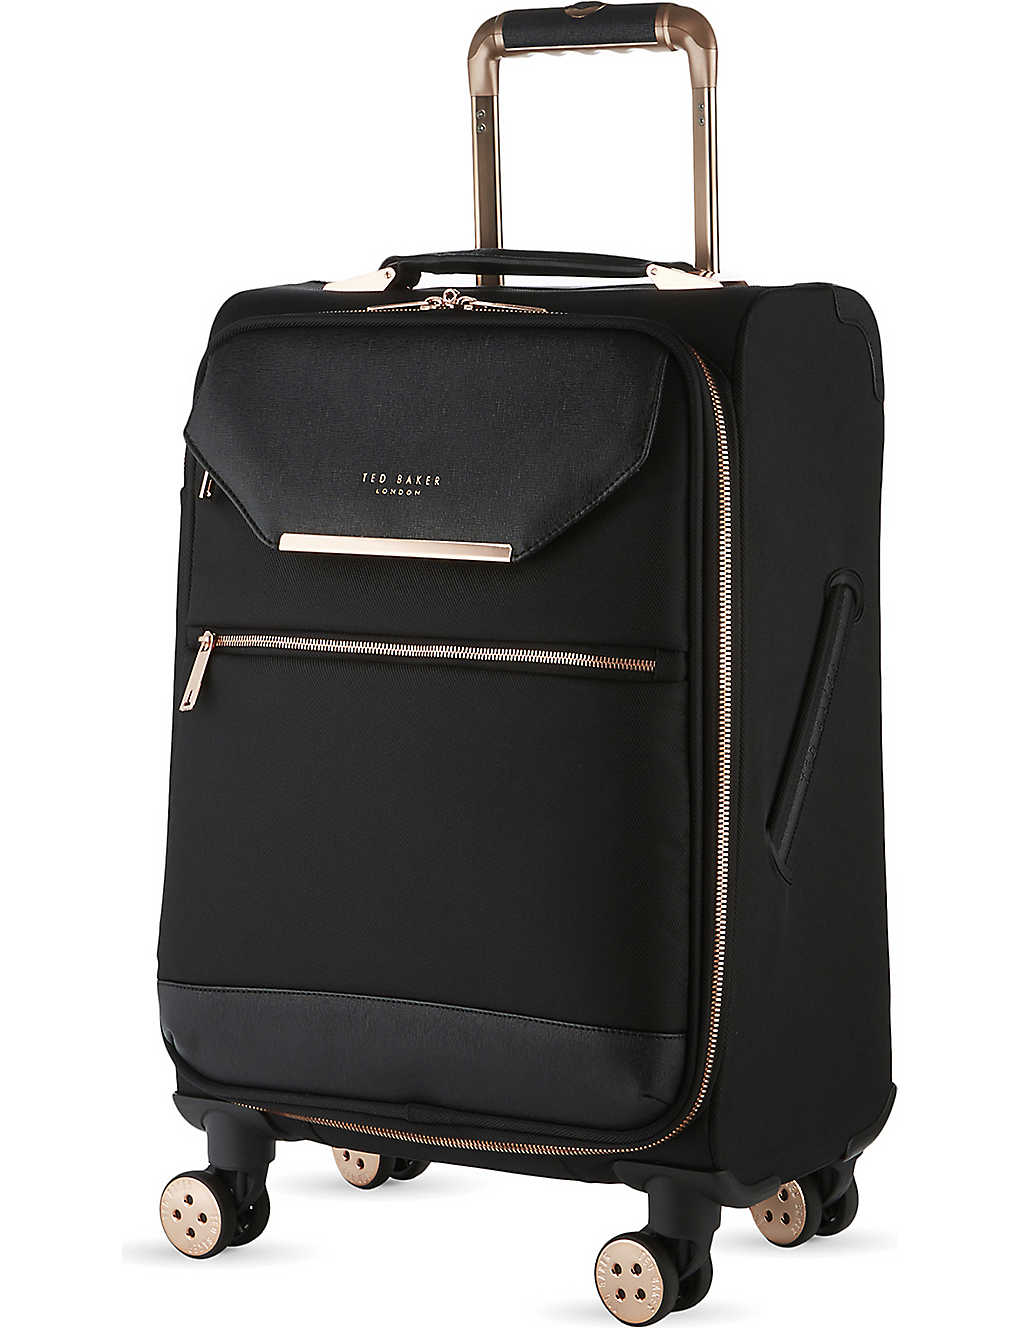 580c936e743 TED BAKER - Albany four-wheel cabin suitcase 55cm | Selfridges.com